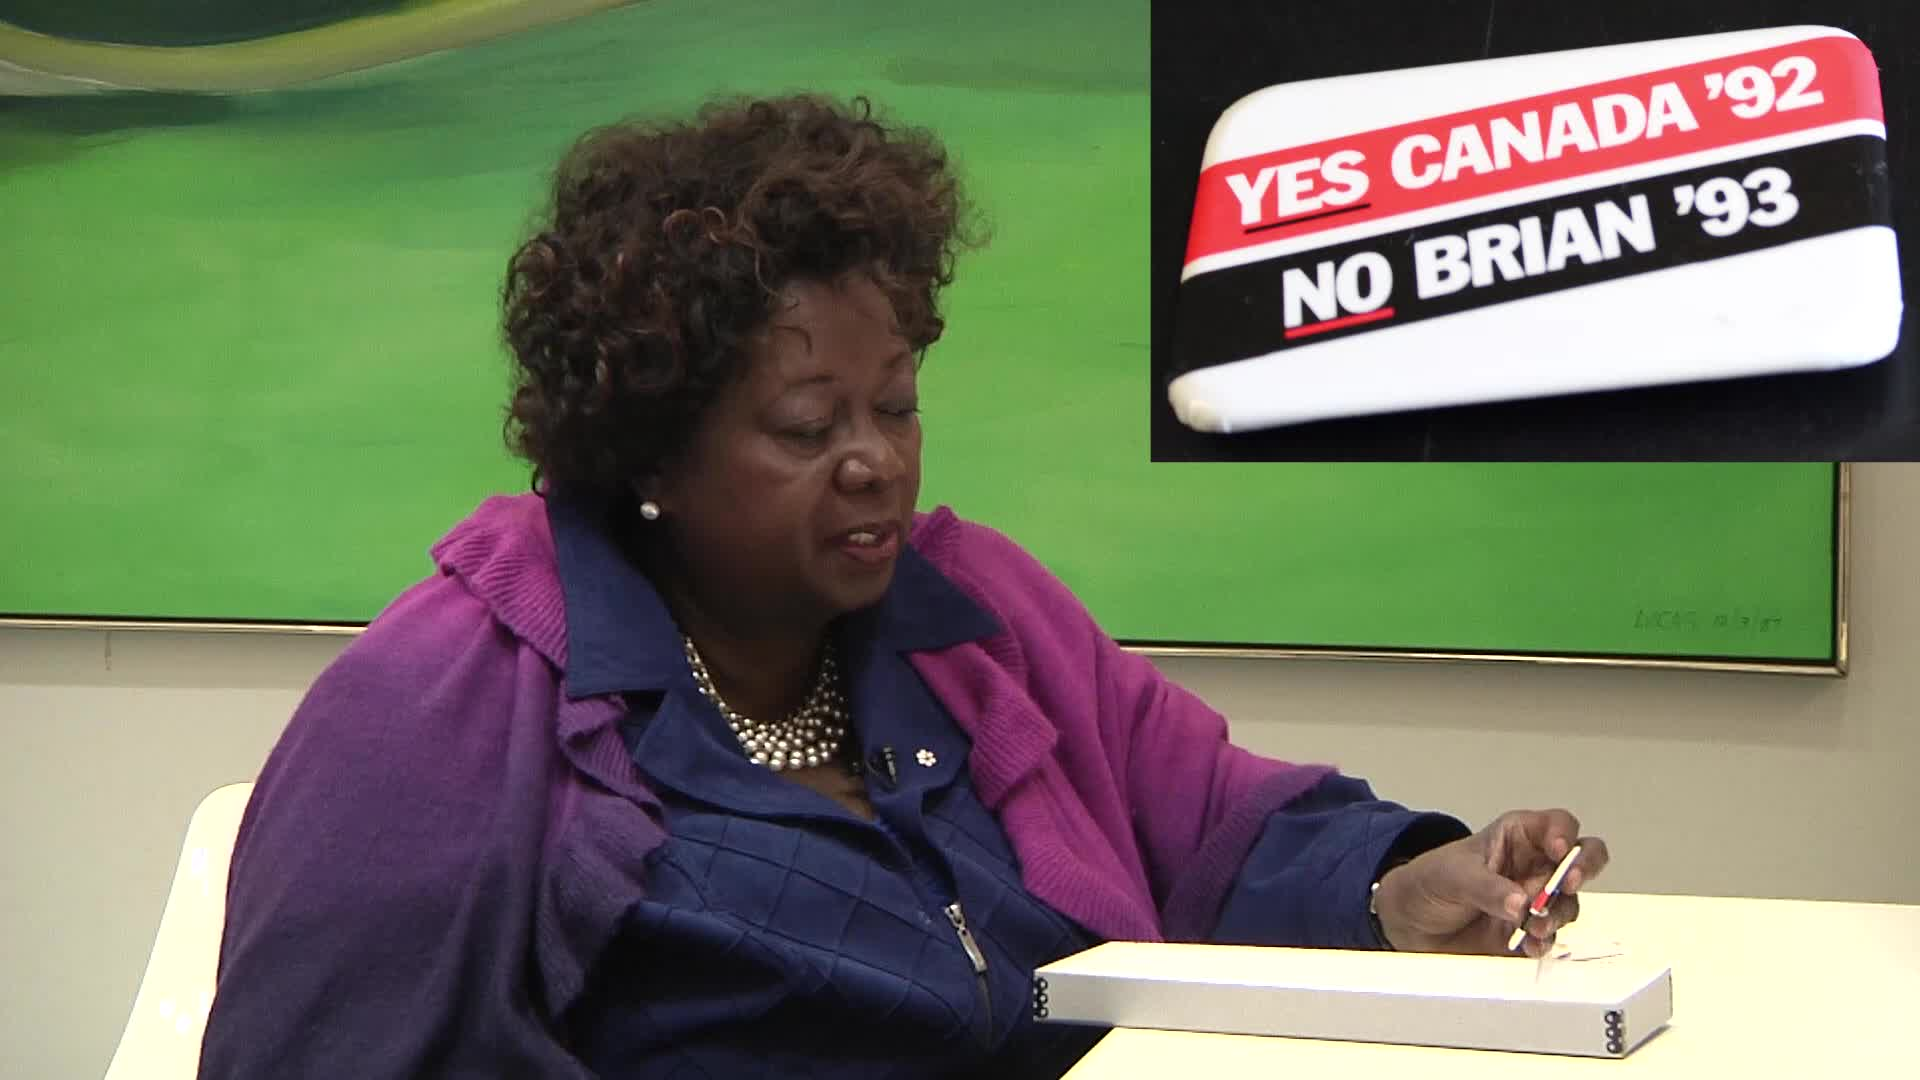 Jean Augustine interview: Yes Canada 92, No Brian 93 button